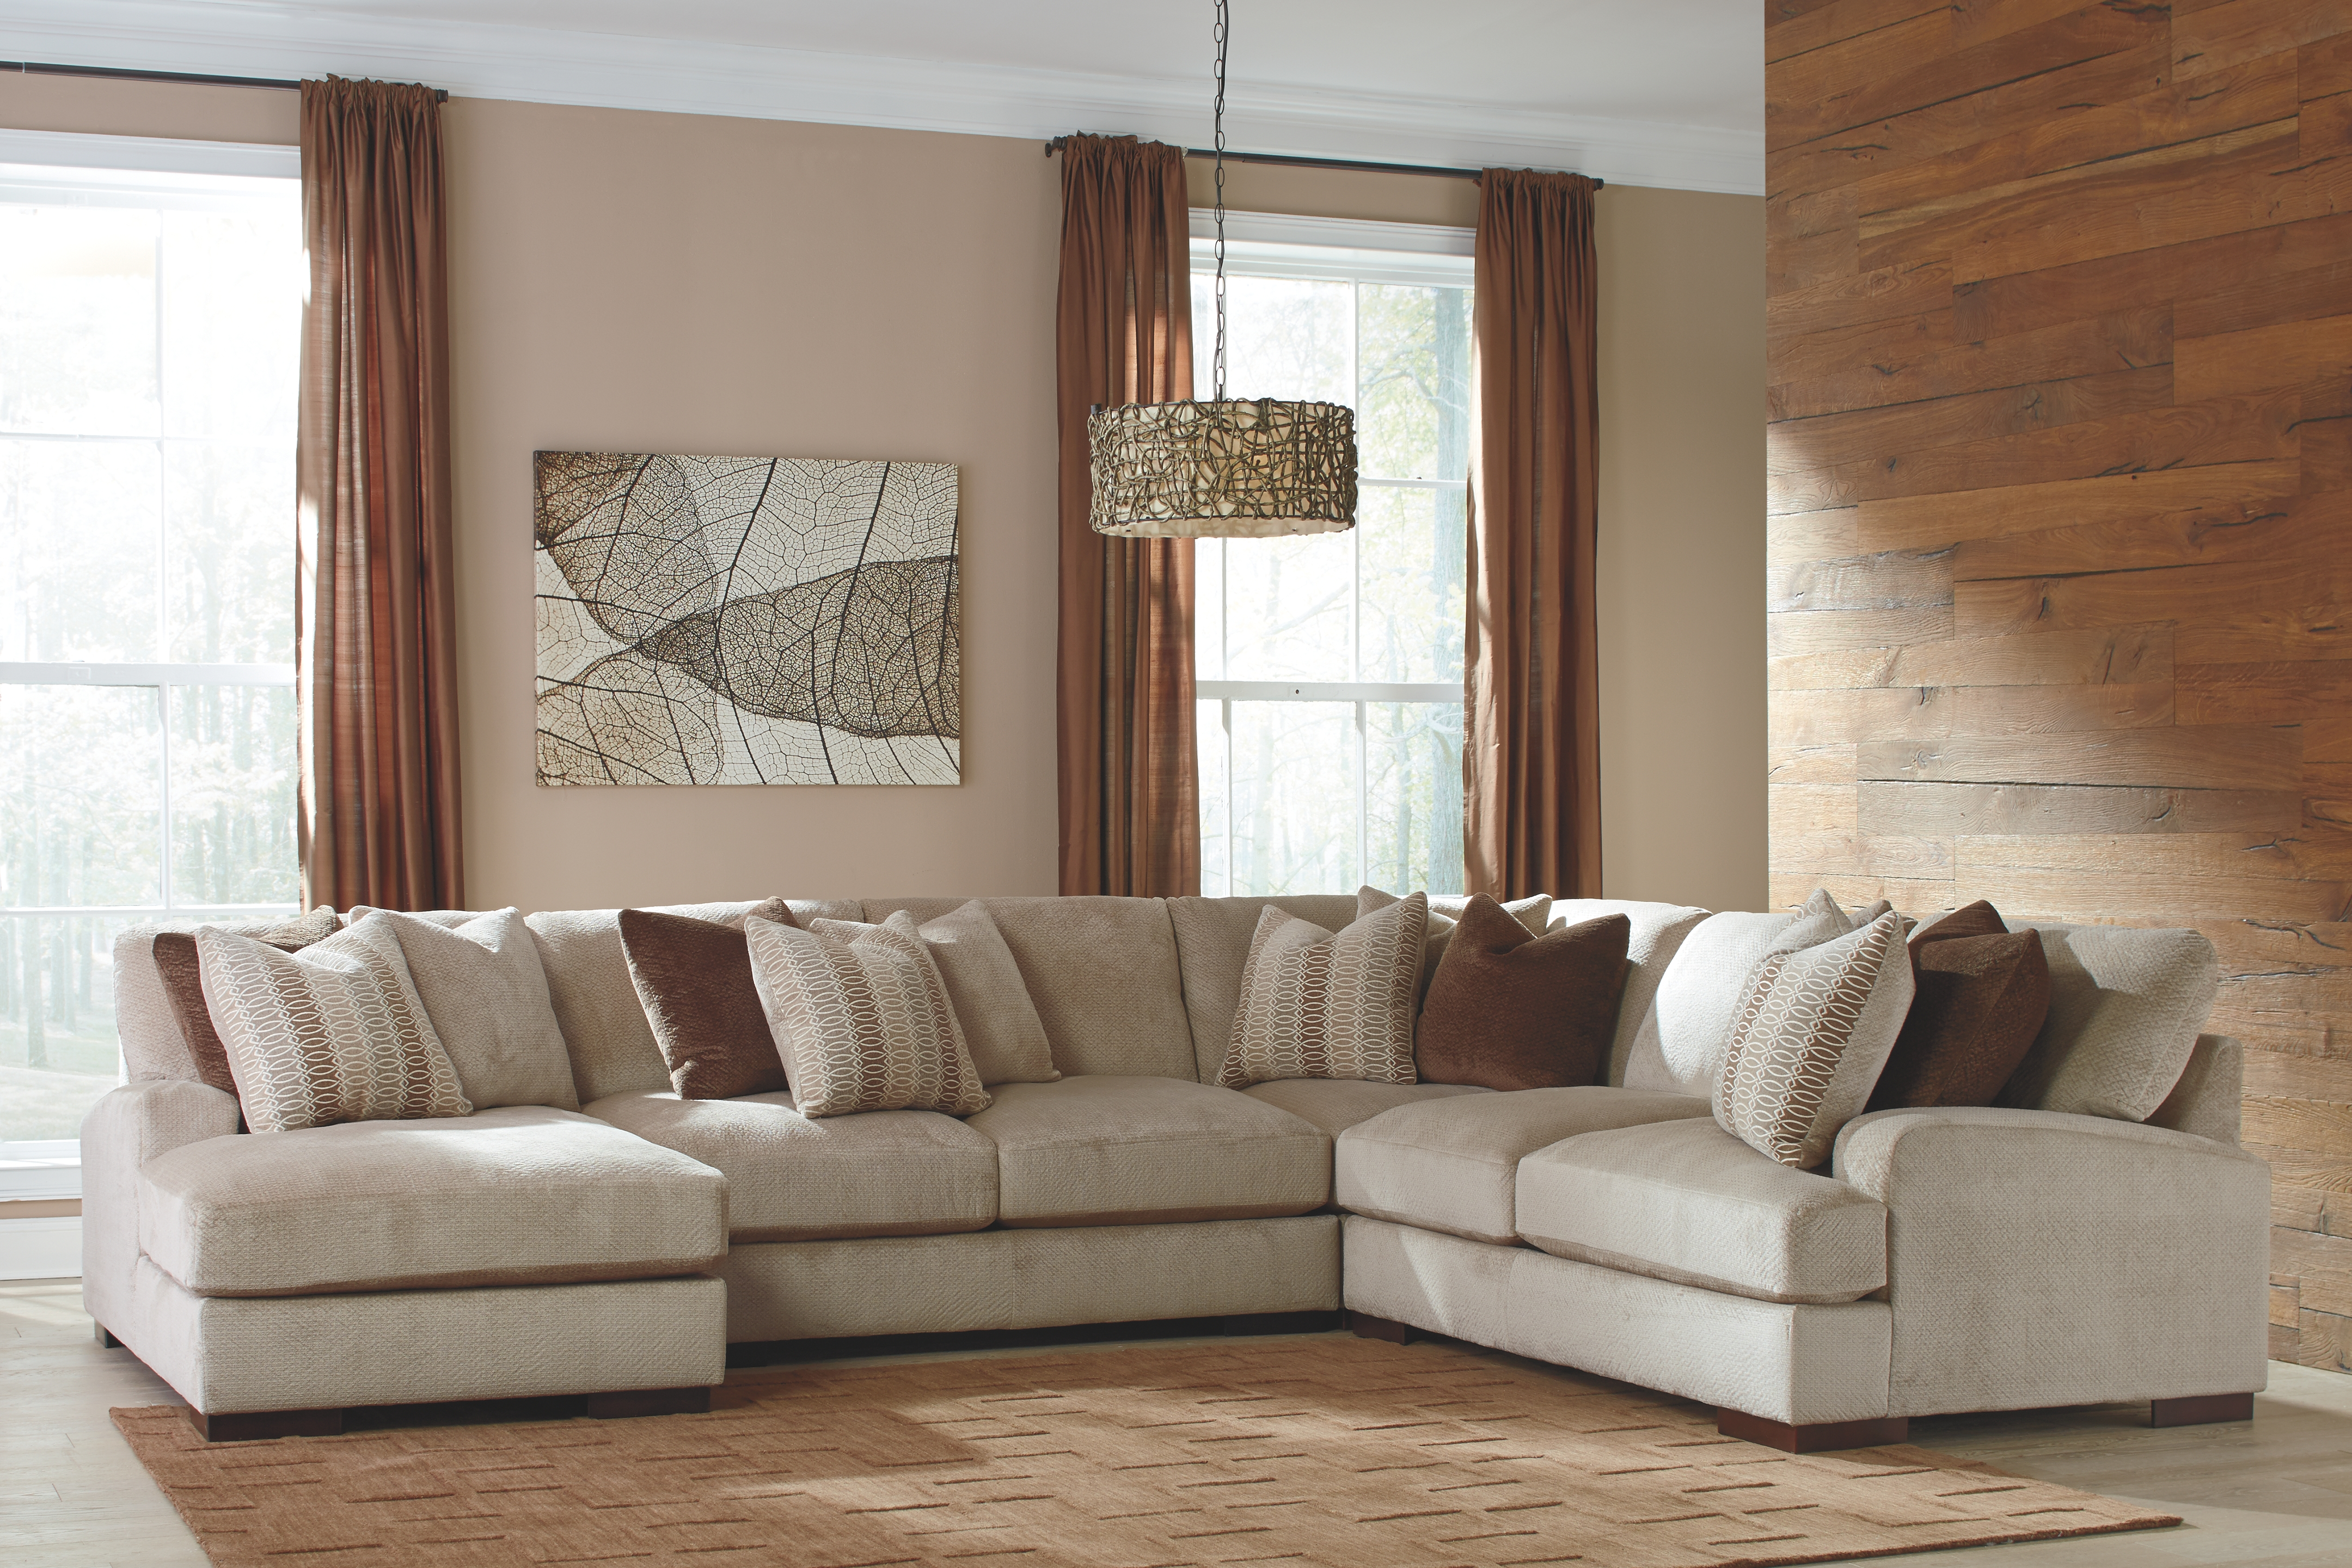 Magnificent Arminio 4 Piece Sectional With Chaise Fleece Products In Onthecornerstone Fun Painted Chair Ideas Images Onthecornerstoneorg